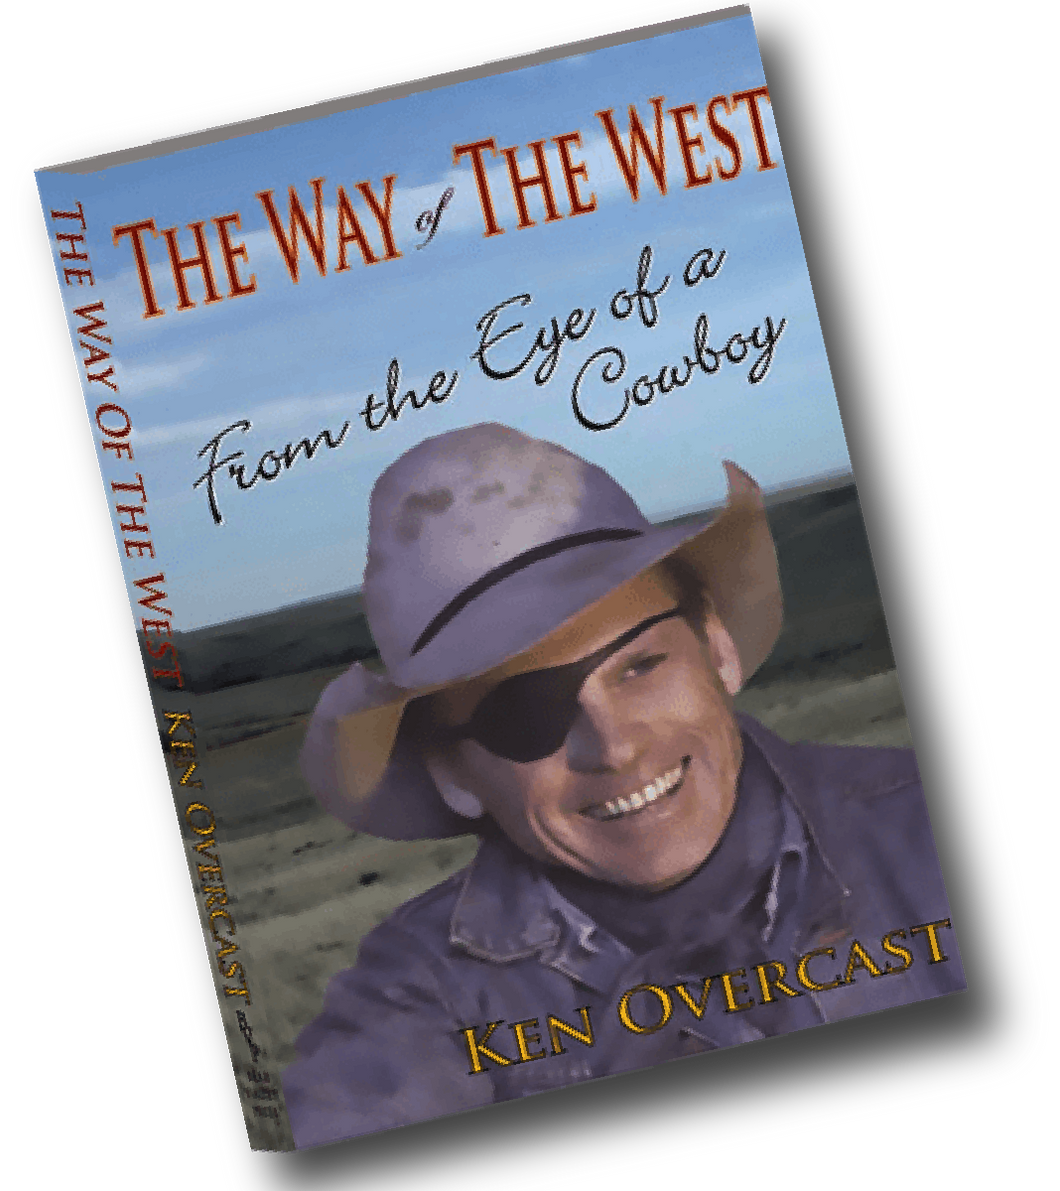 The Way Of The West, Book of Short Stories from the Real West